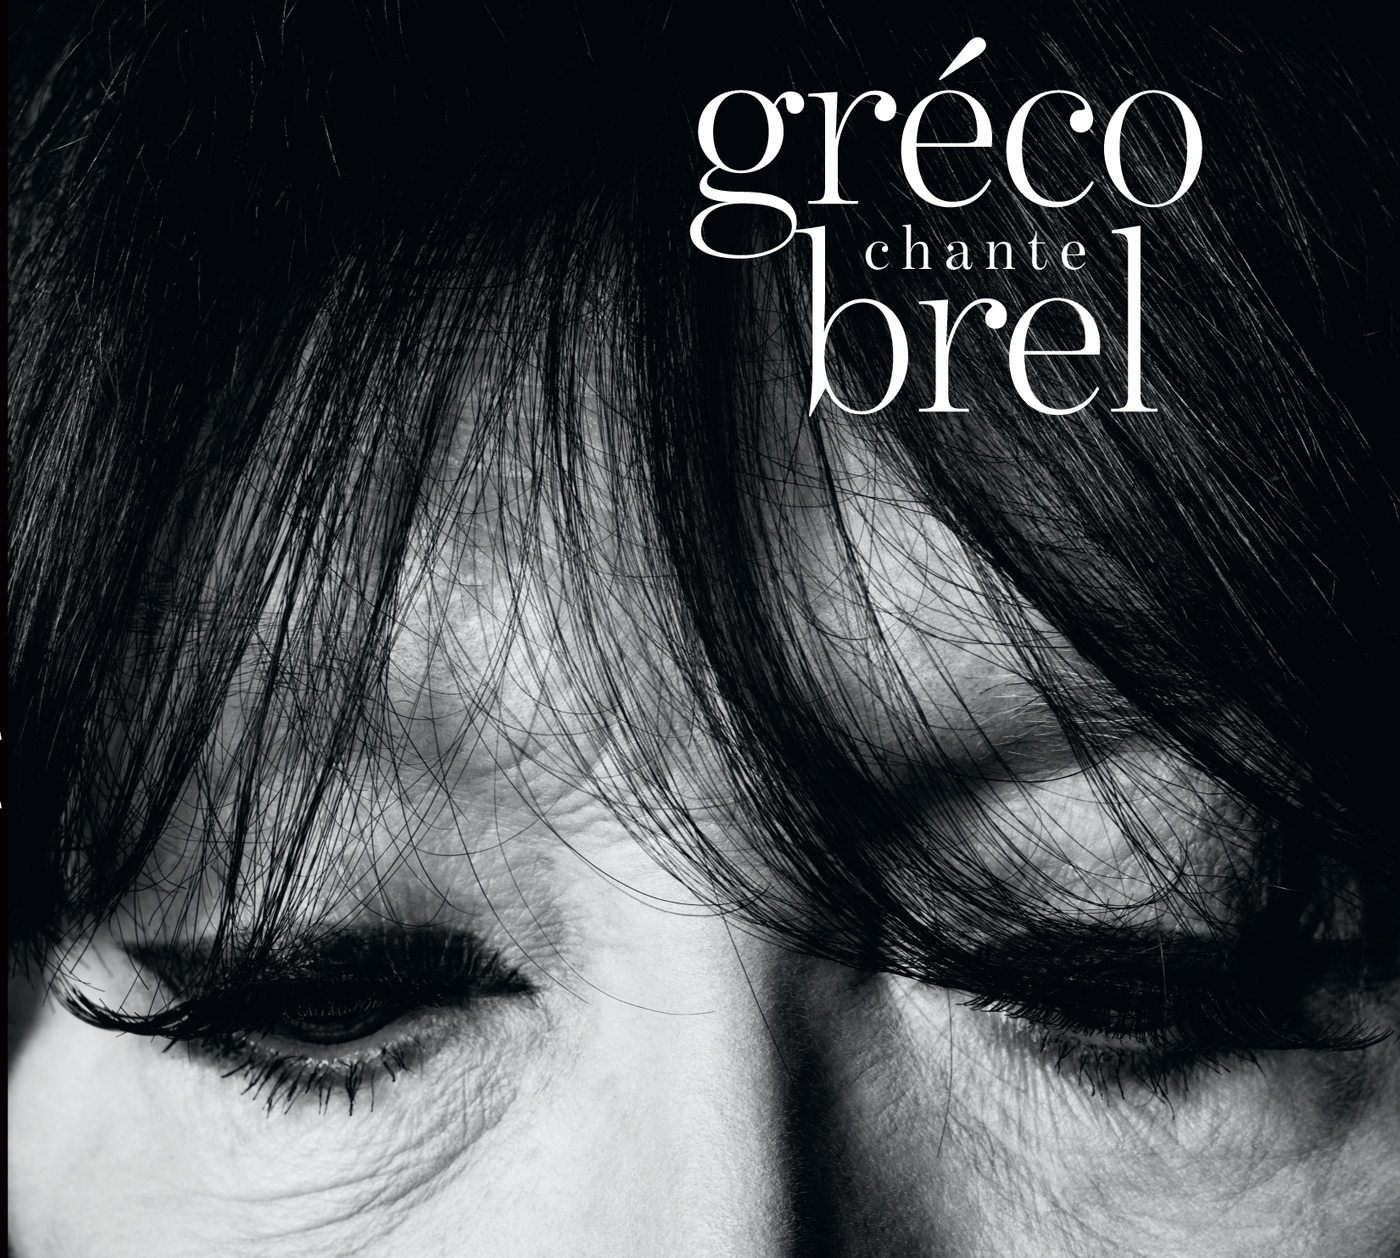 Greco chante Brel  by Juliette  Greco cover